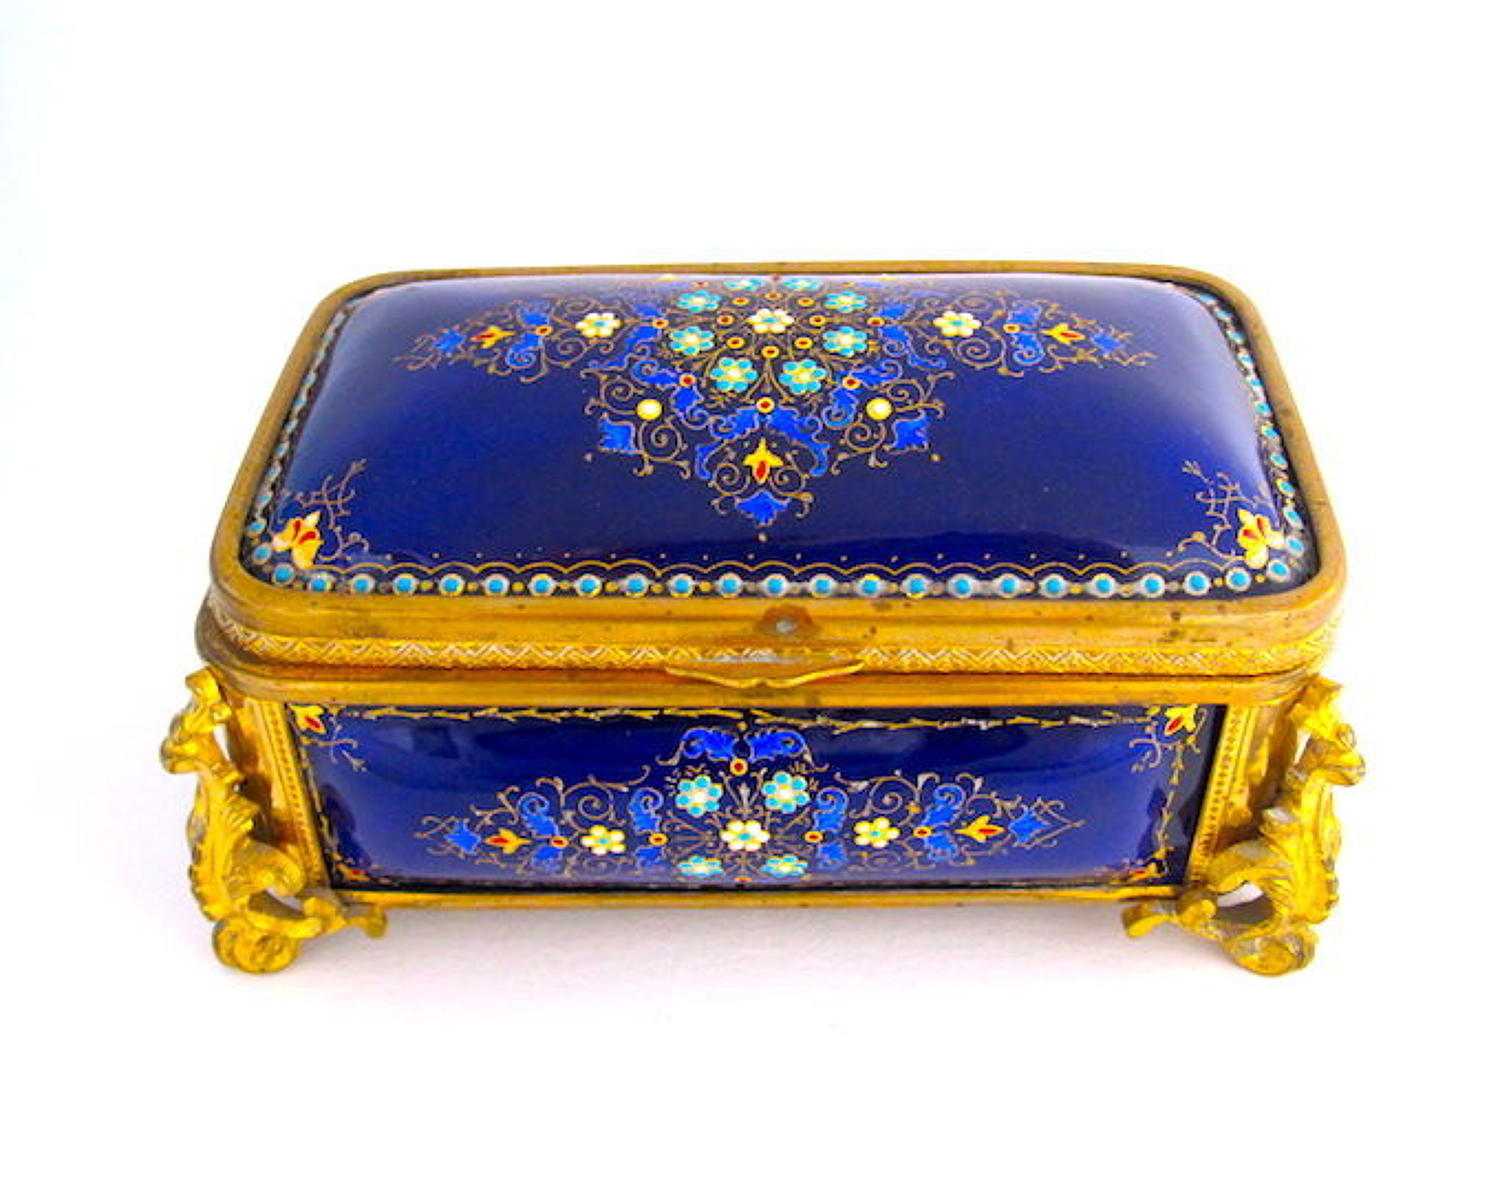 A Superb Large Tahan Antique French 'Bombe' Jewel Casket